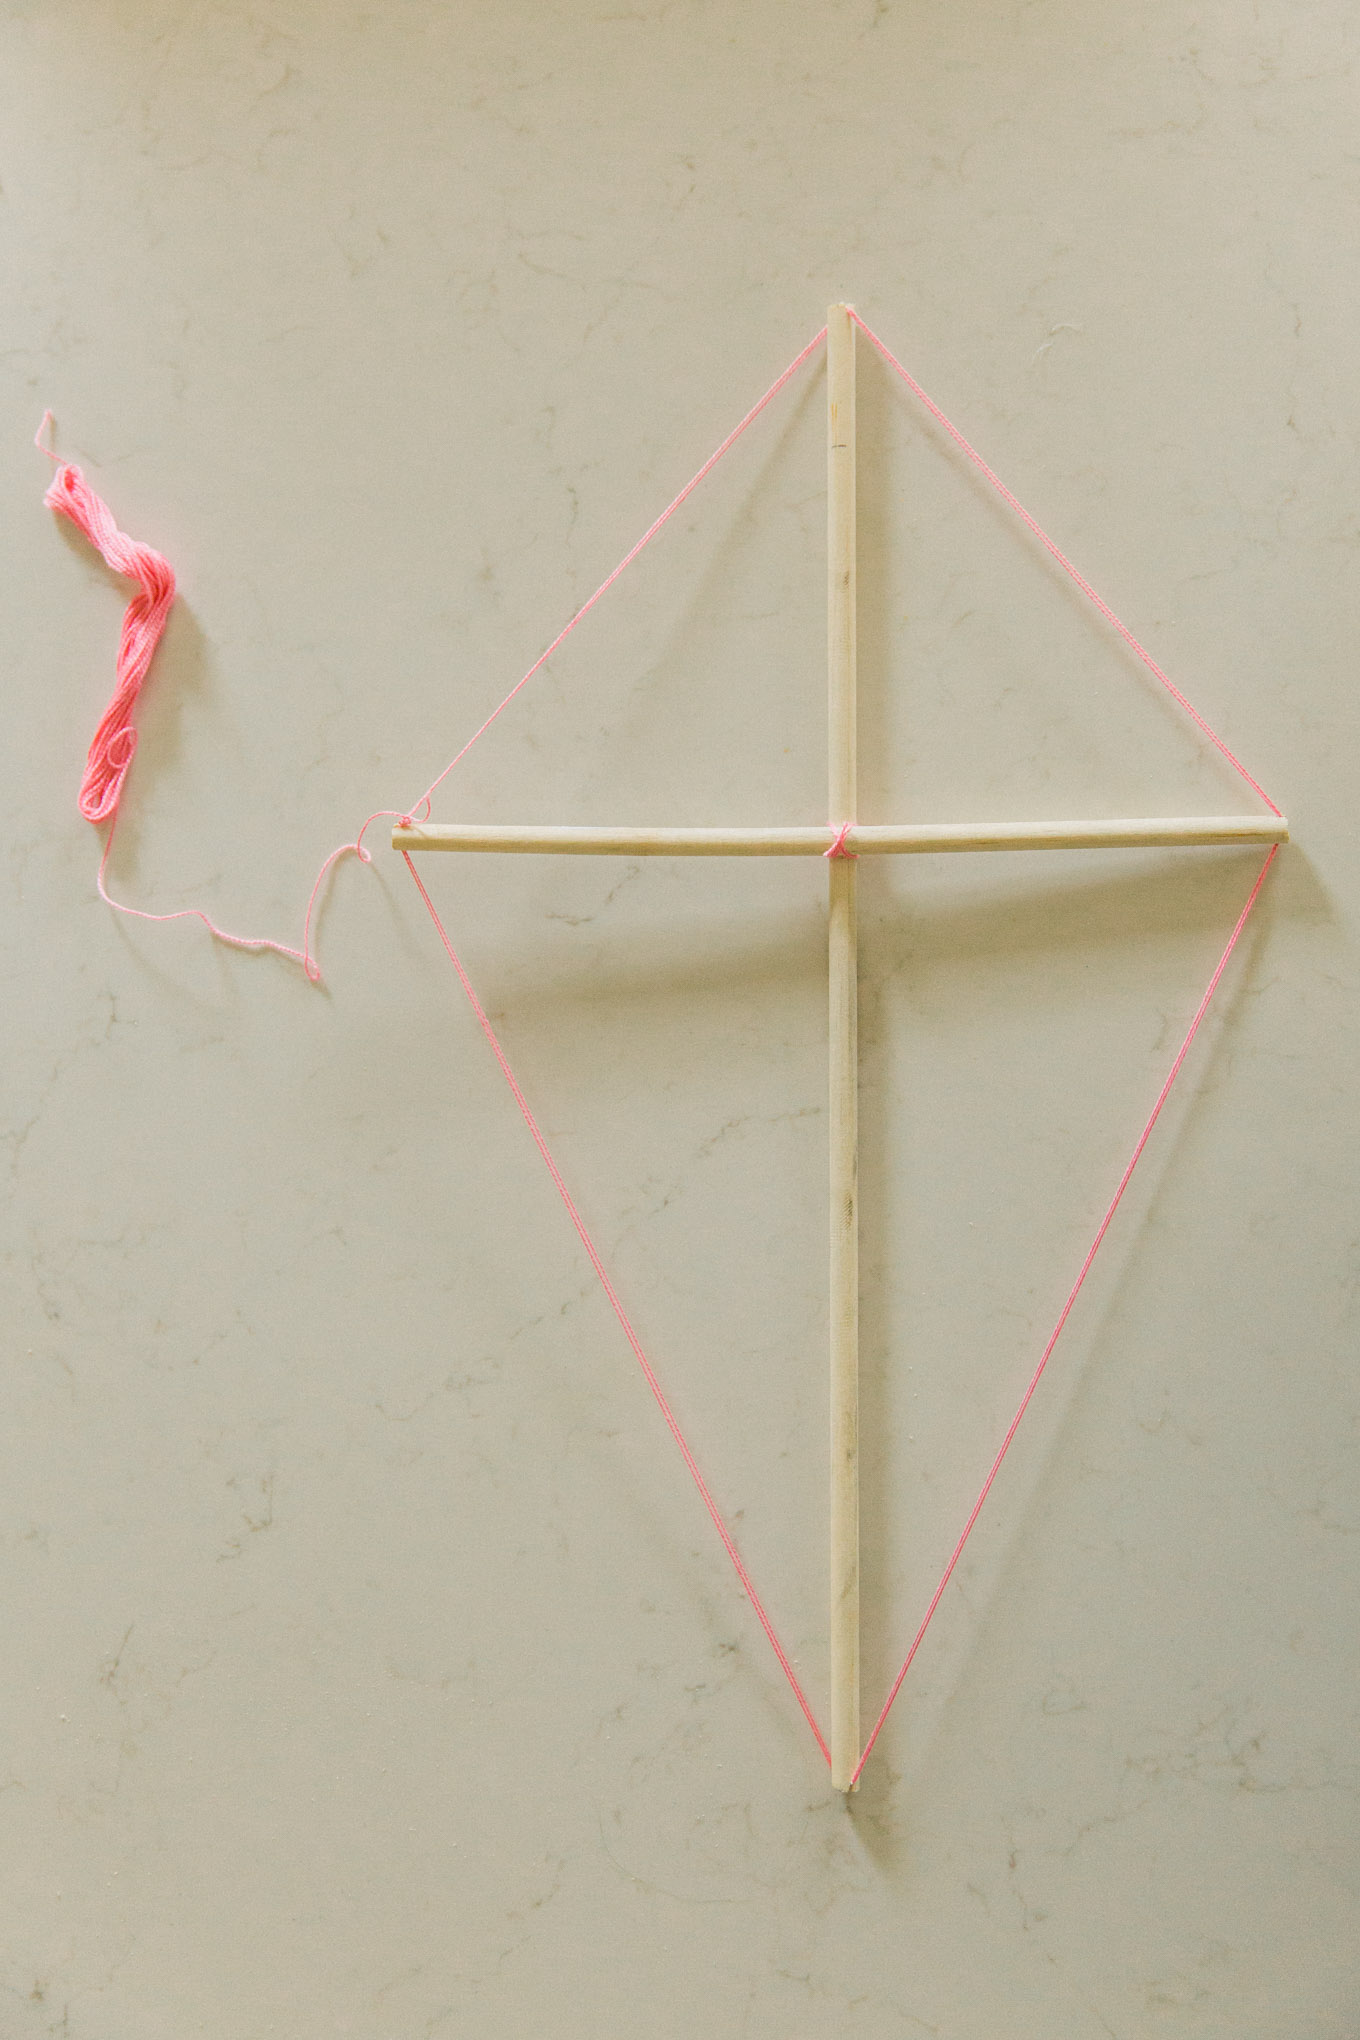 DIY old fashioned kite